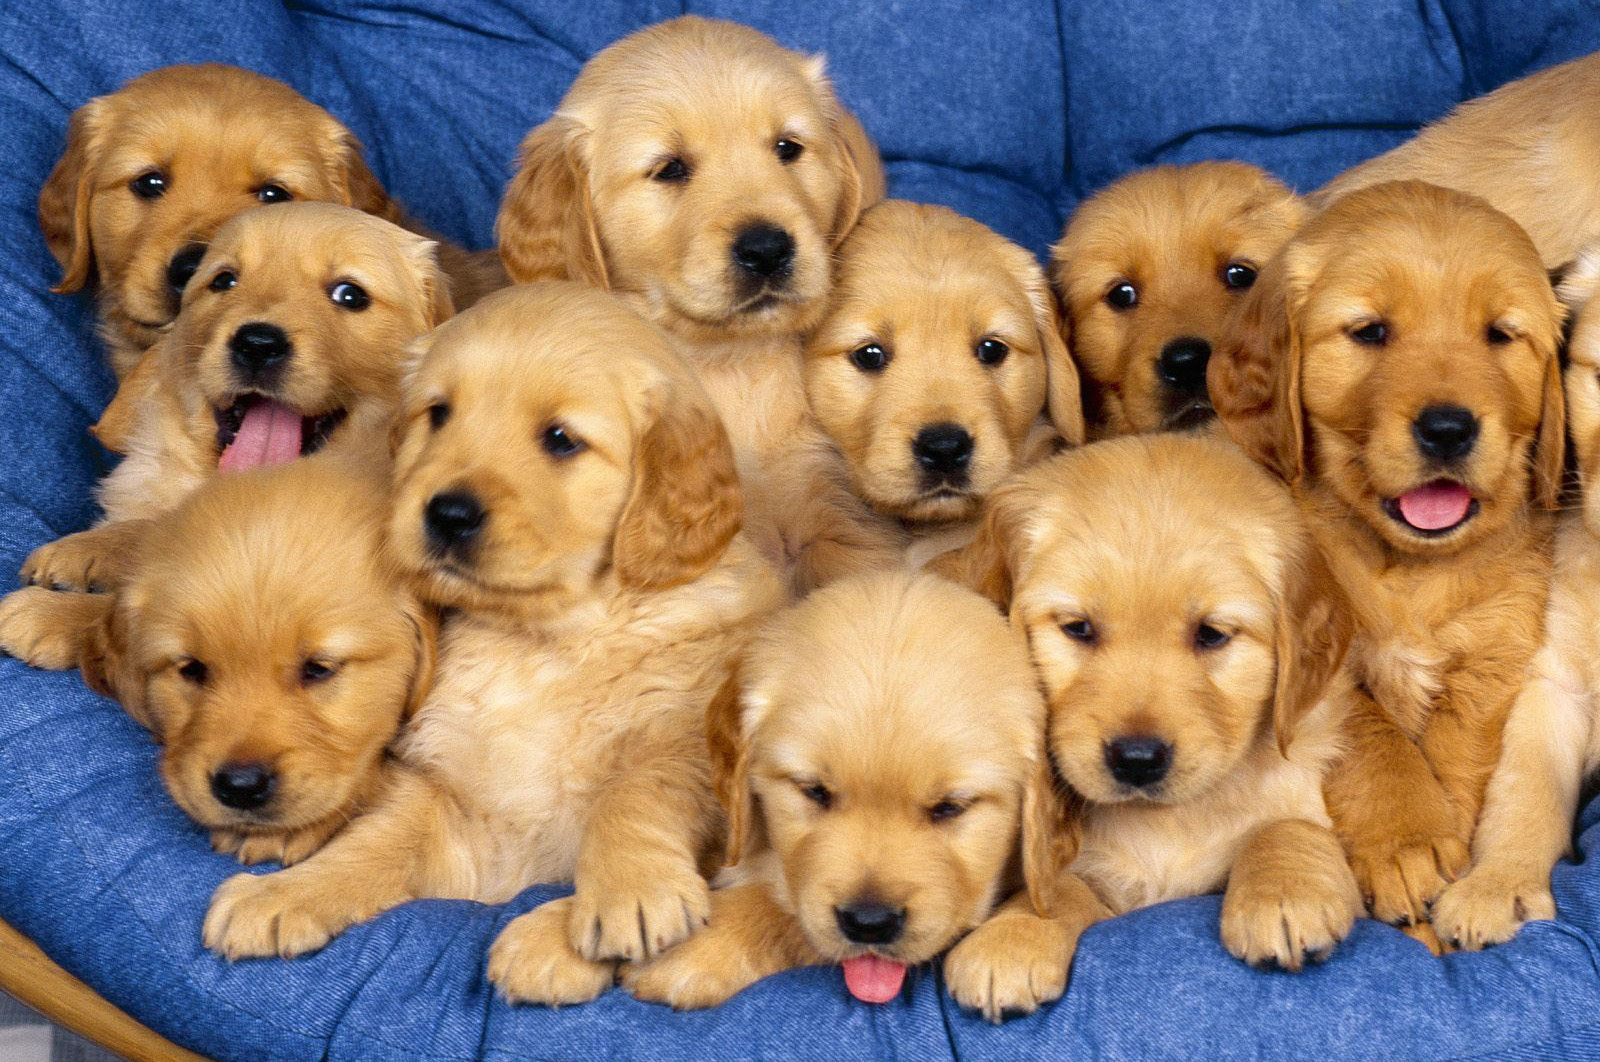 Cute-Dogs-And-Puppies-wallpaper-wpc5803831